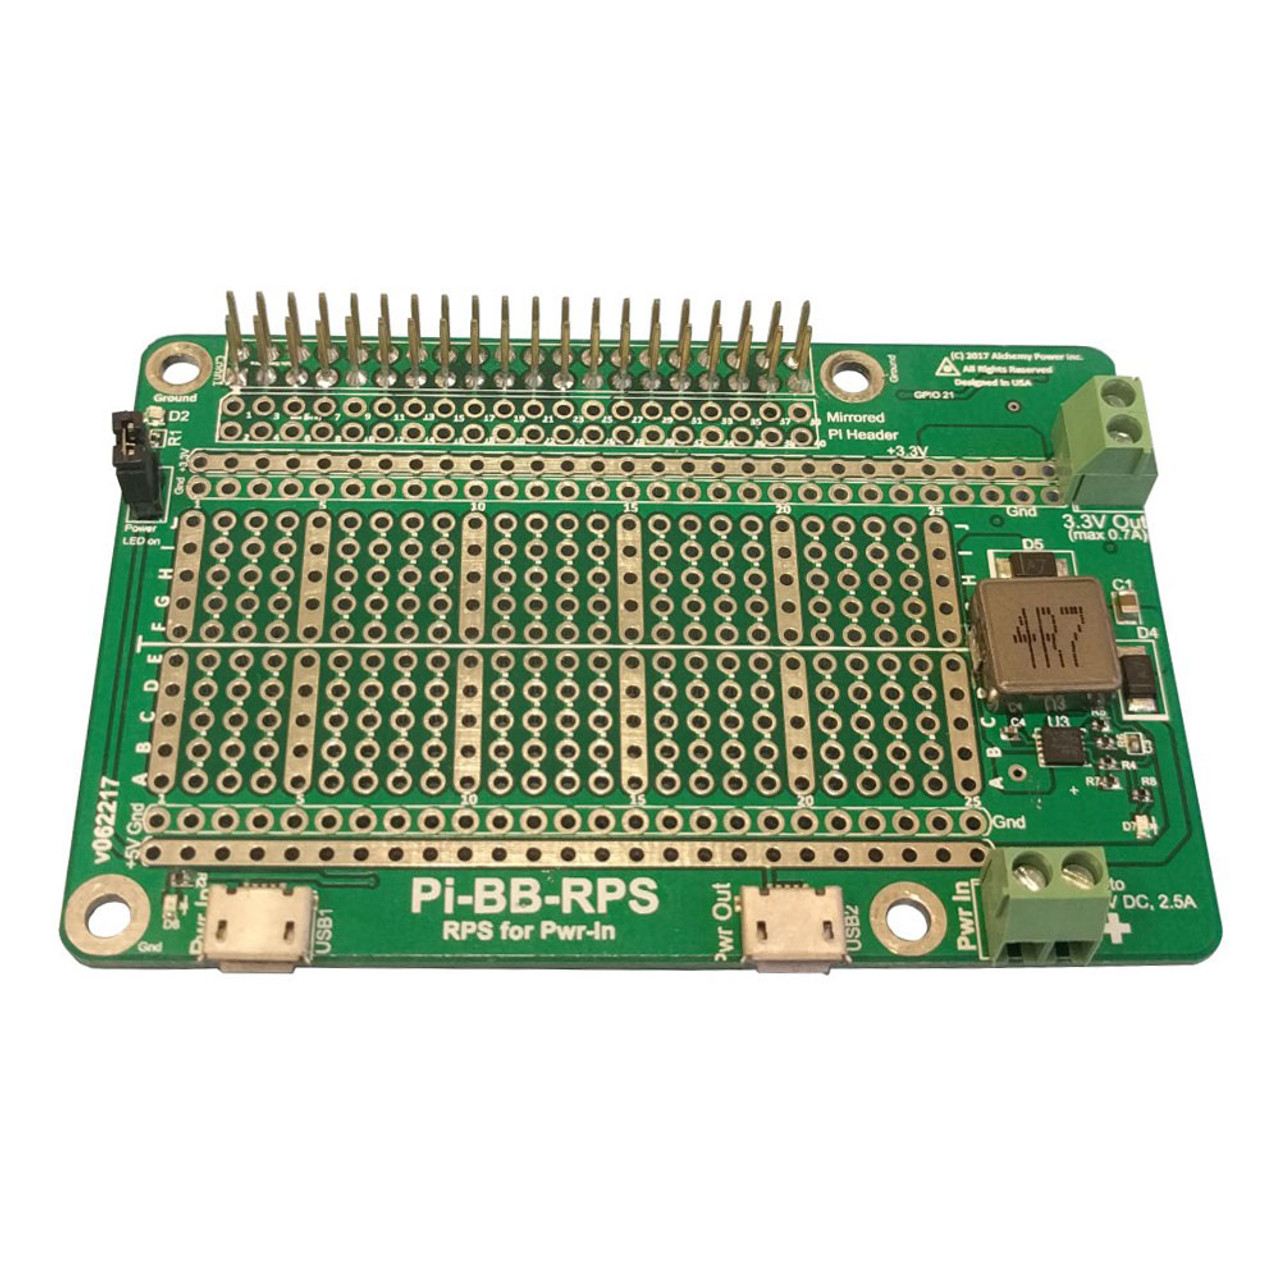 Pi-BB-RPS, Bread Board With Redundant Power for Pi